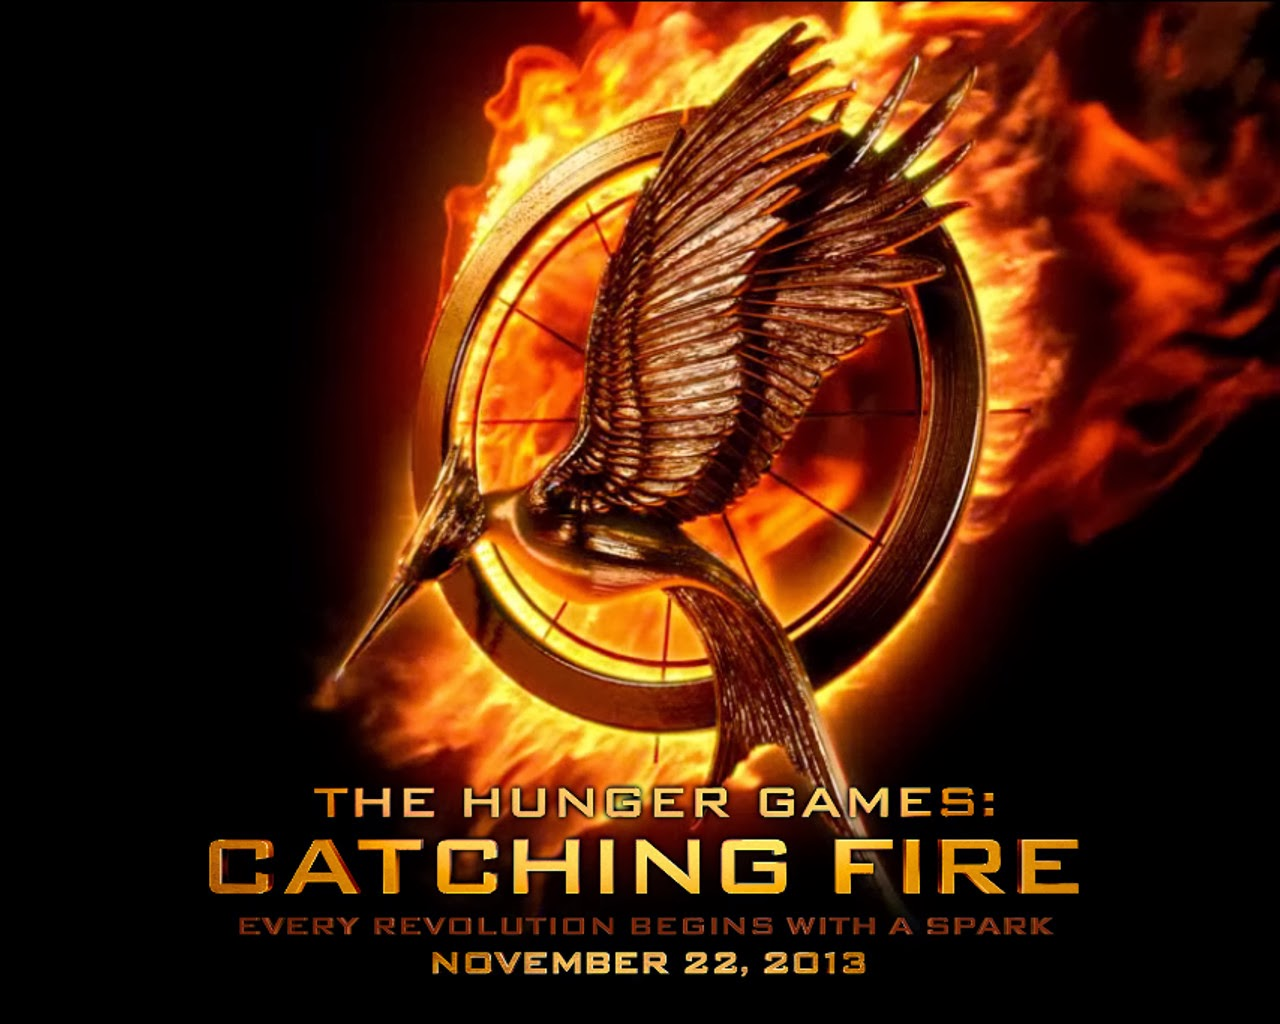 Catching fire essay